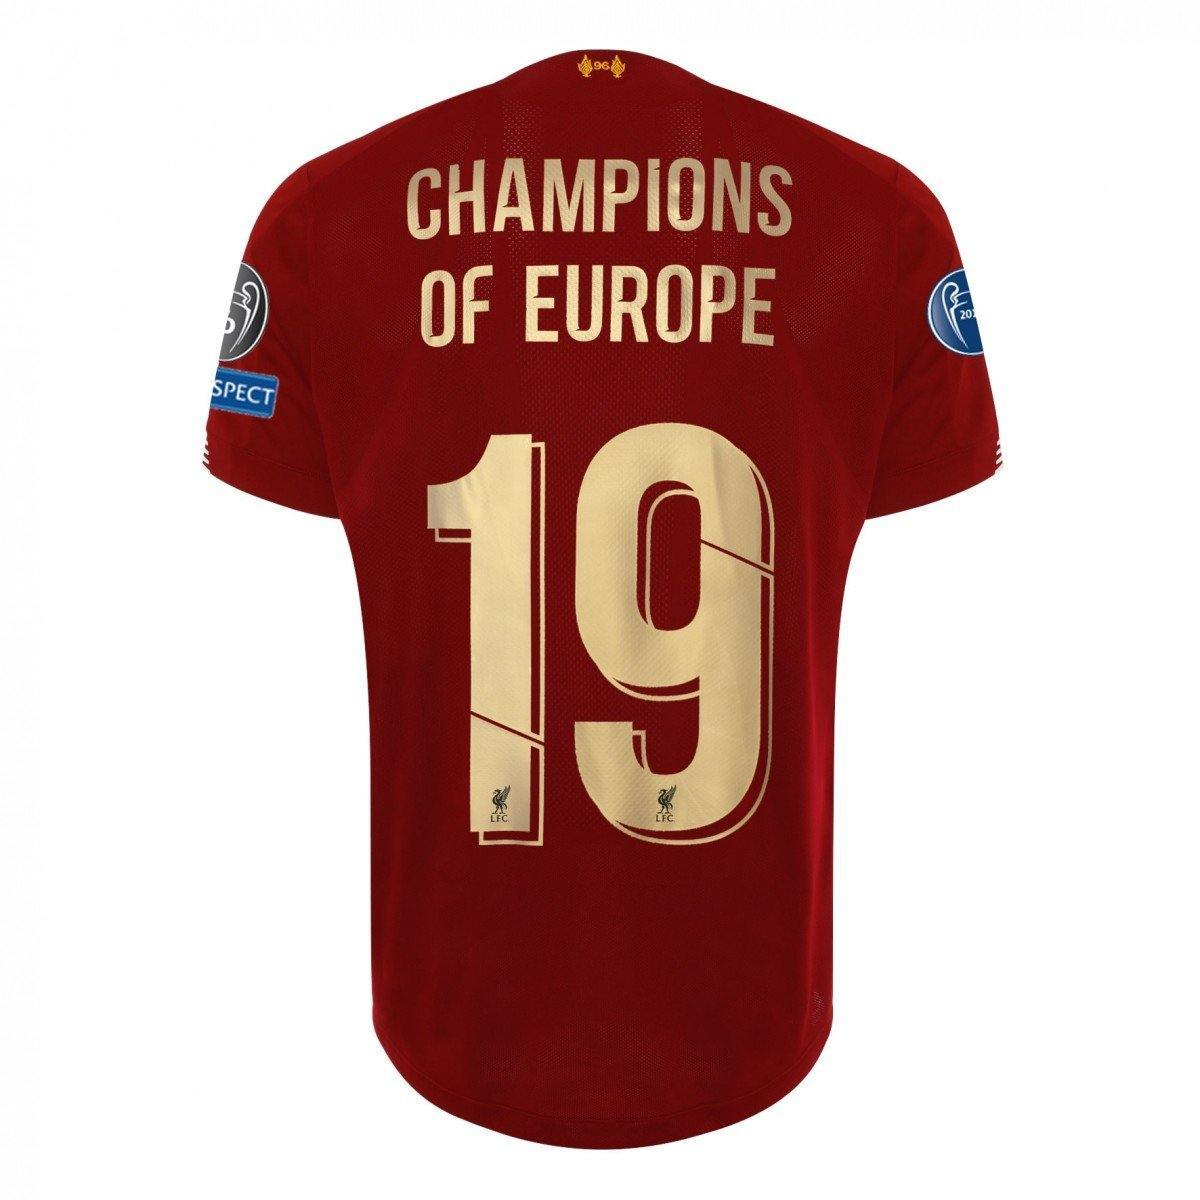 Maillot Liverpool UEFA Champions League 2020 Homme NB freeshipping - Foot Online